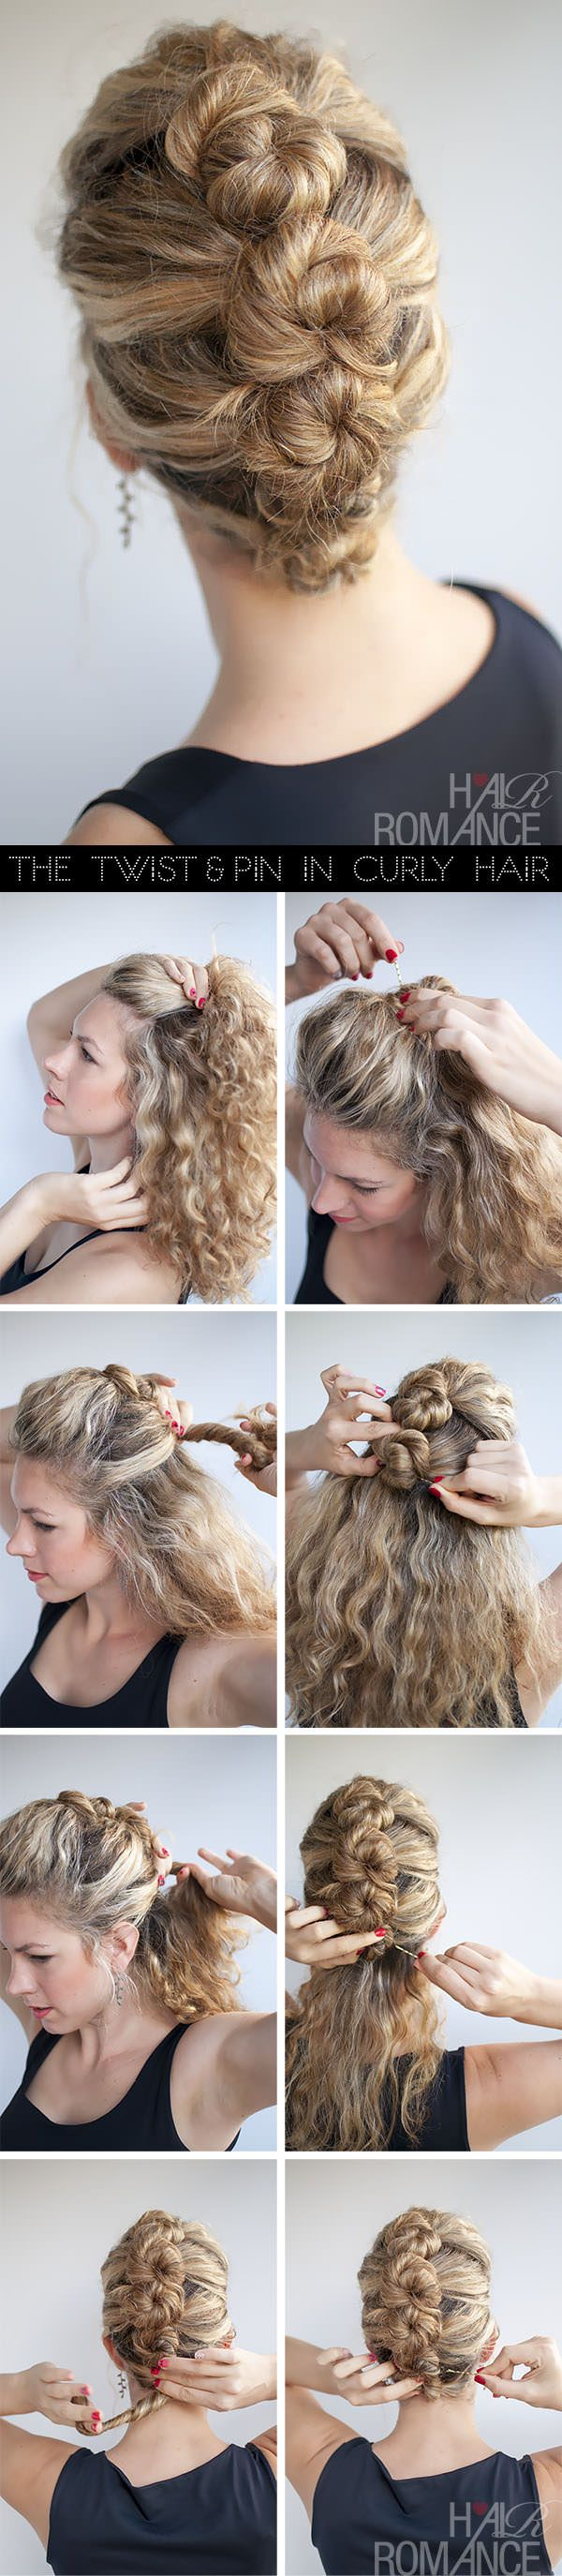 best clutersorting images on pinterest braided updo gorgeous